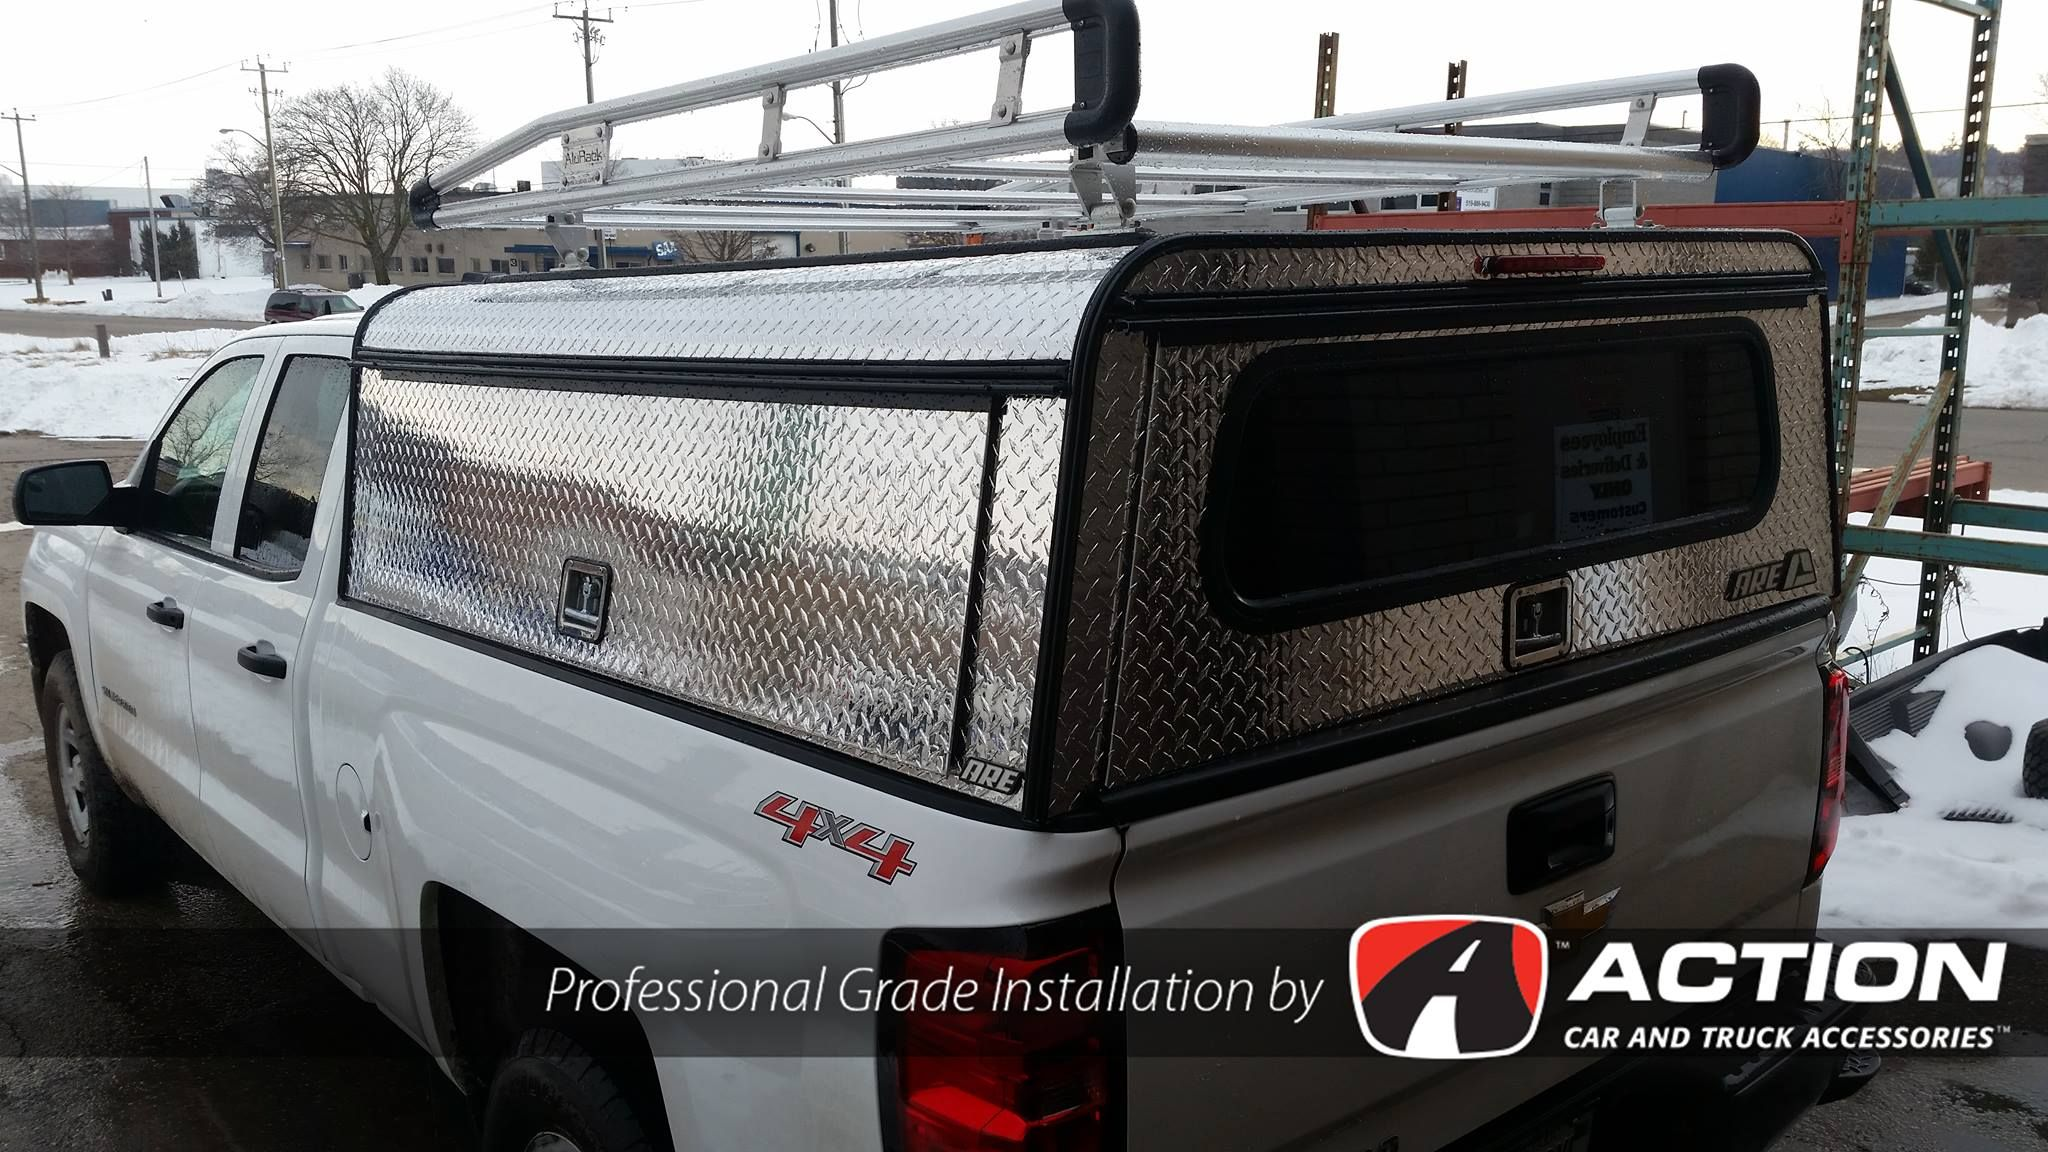 Chev Silverado With Installed Diamond Edition Series Cap By A R E Truck Caps And Tonneau Covers And A Prime Alurack Installed By Our Store In Kitchen Truck Caps